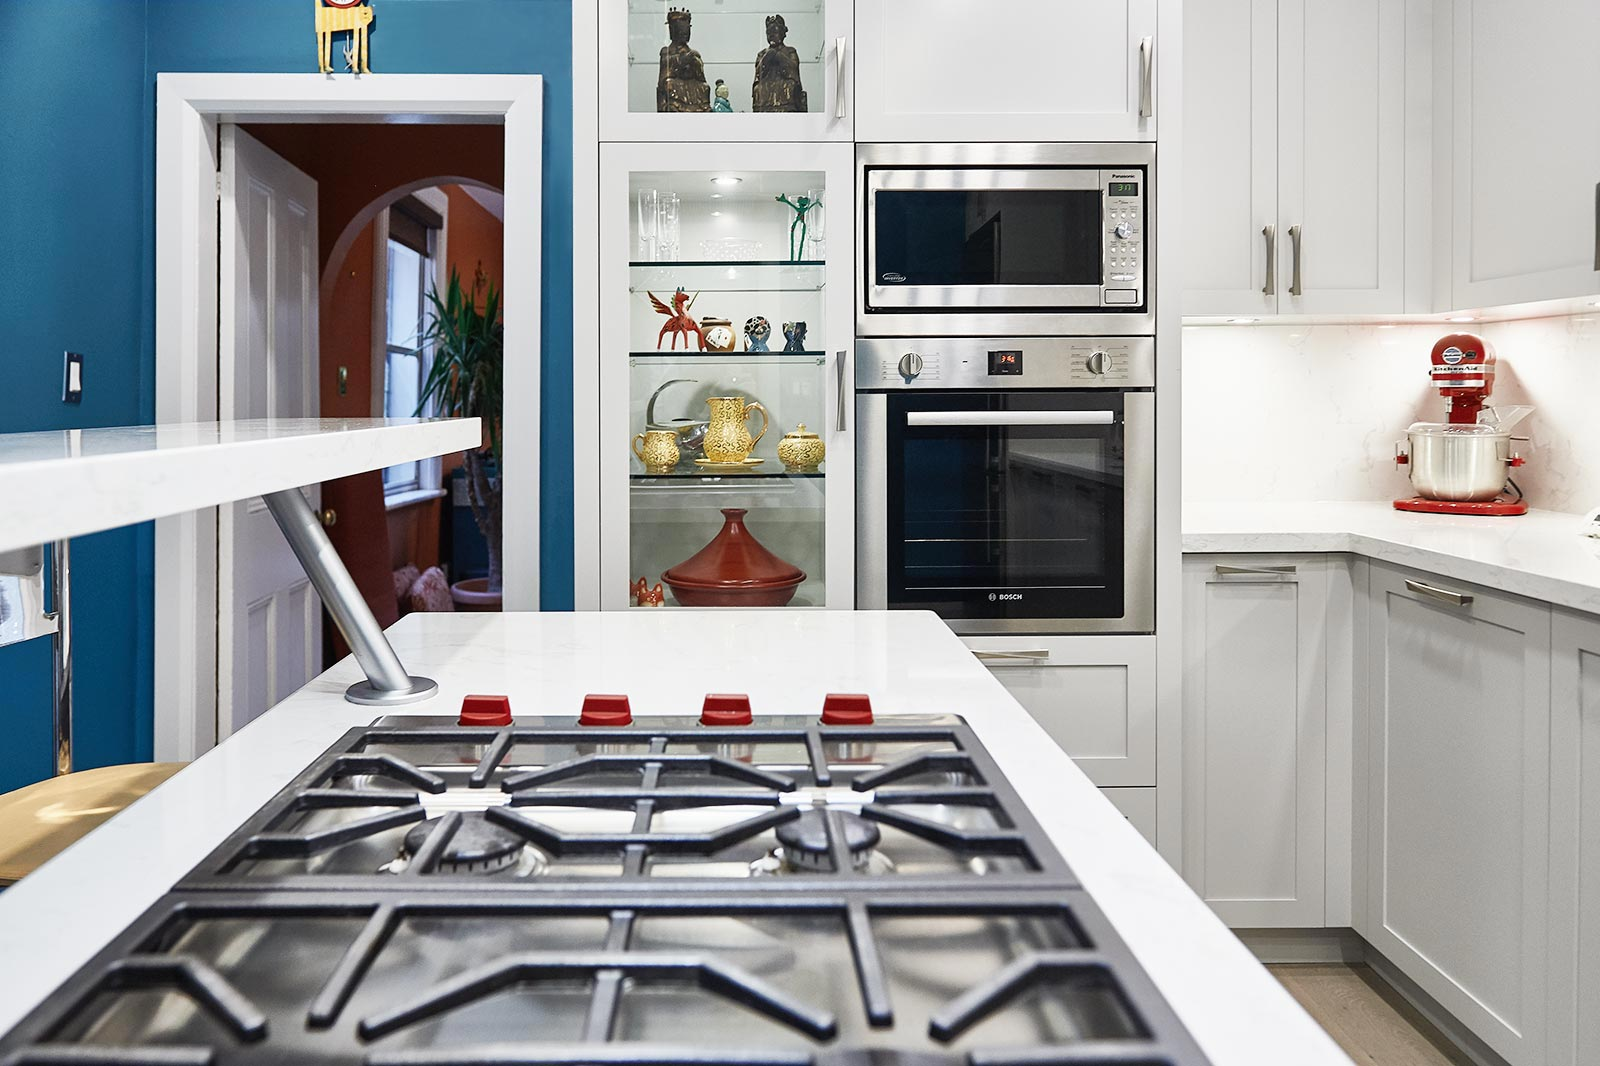 Shaker style cabinetry with blue walls in Victorian house. Toronto, Canada